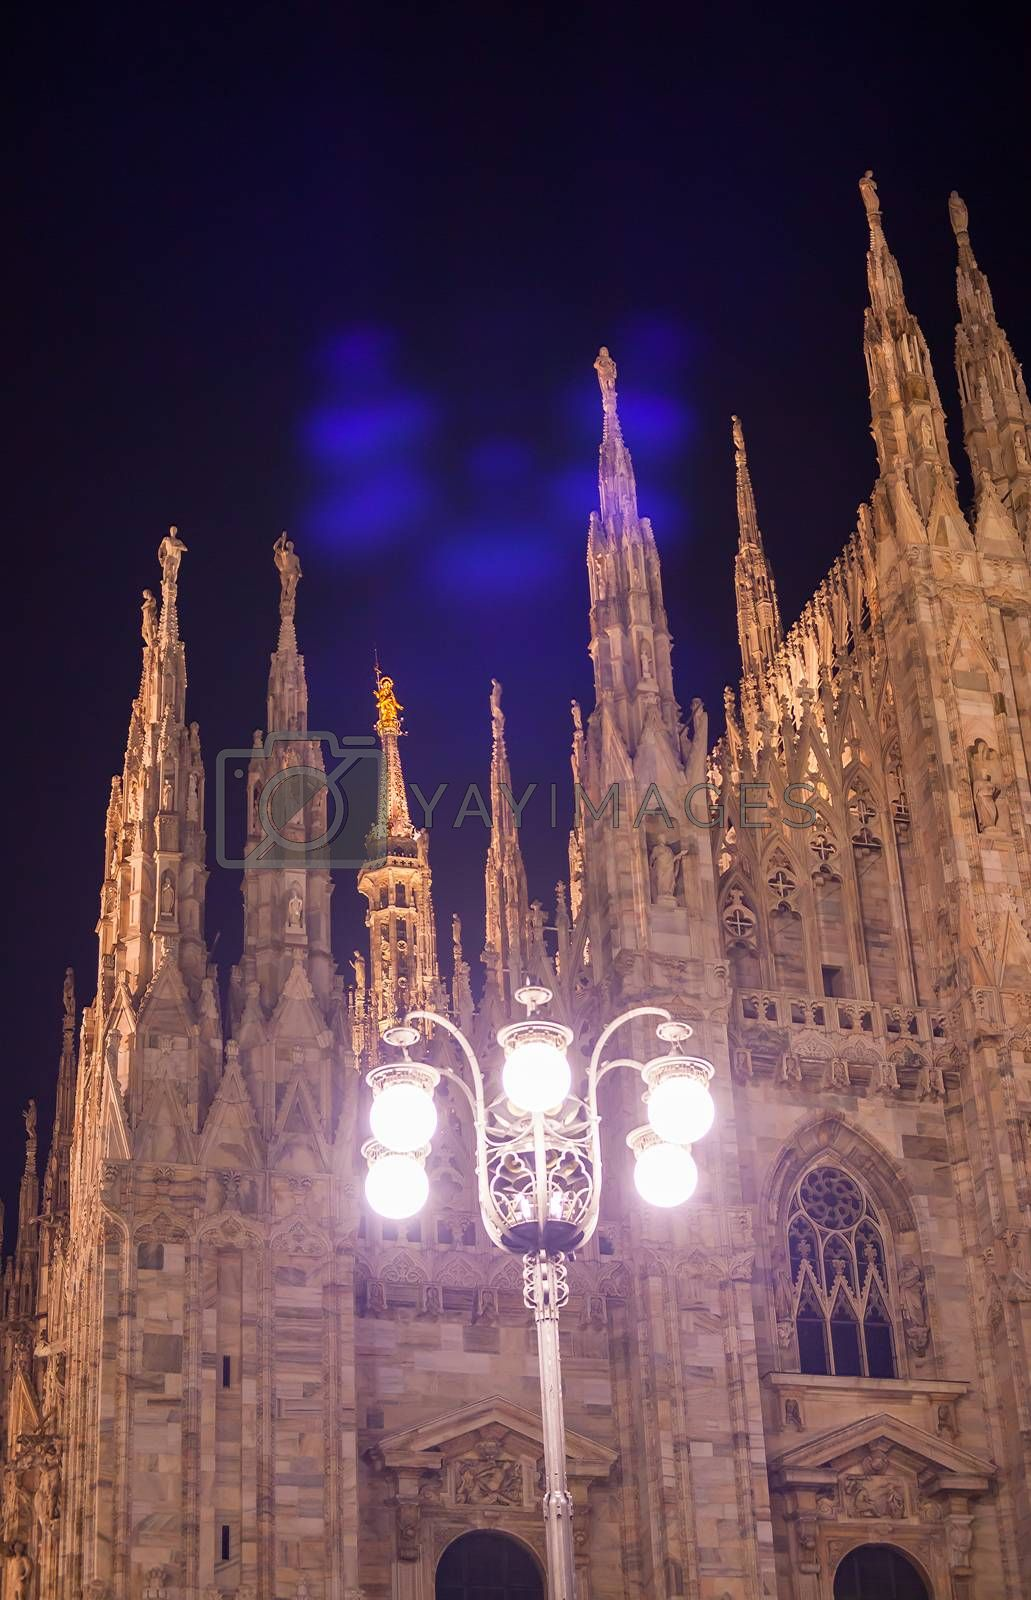 Milan cathedral by bepsimage